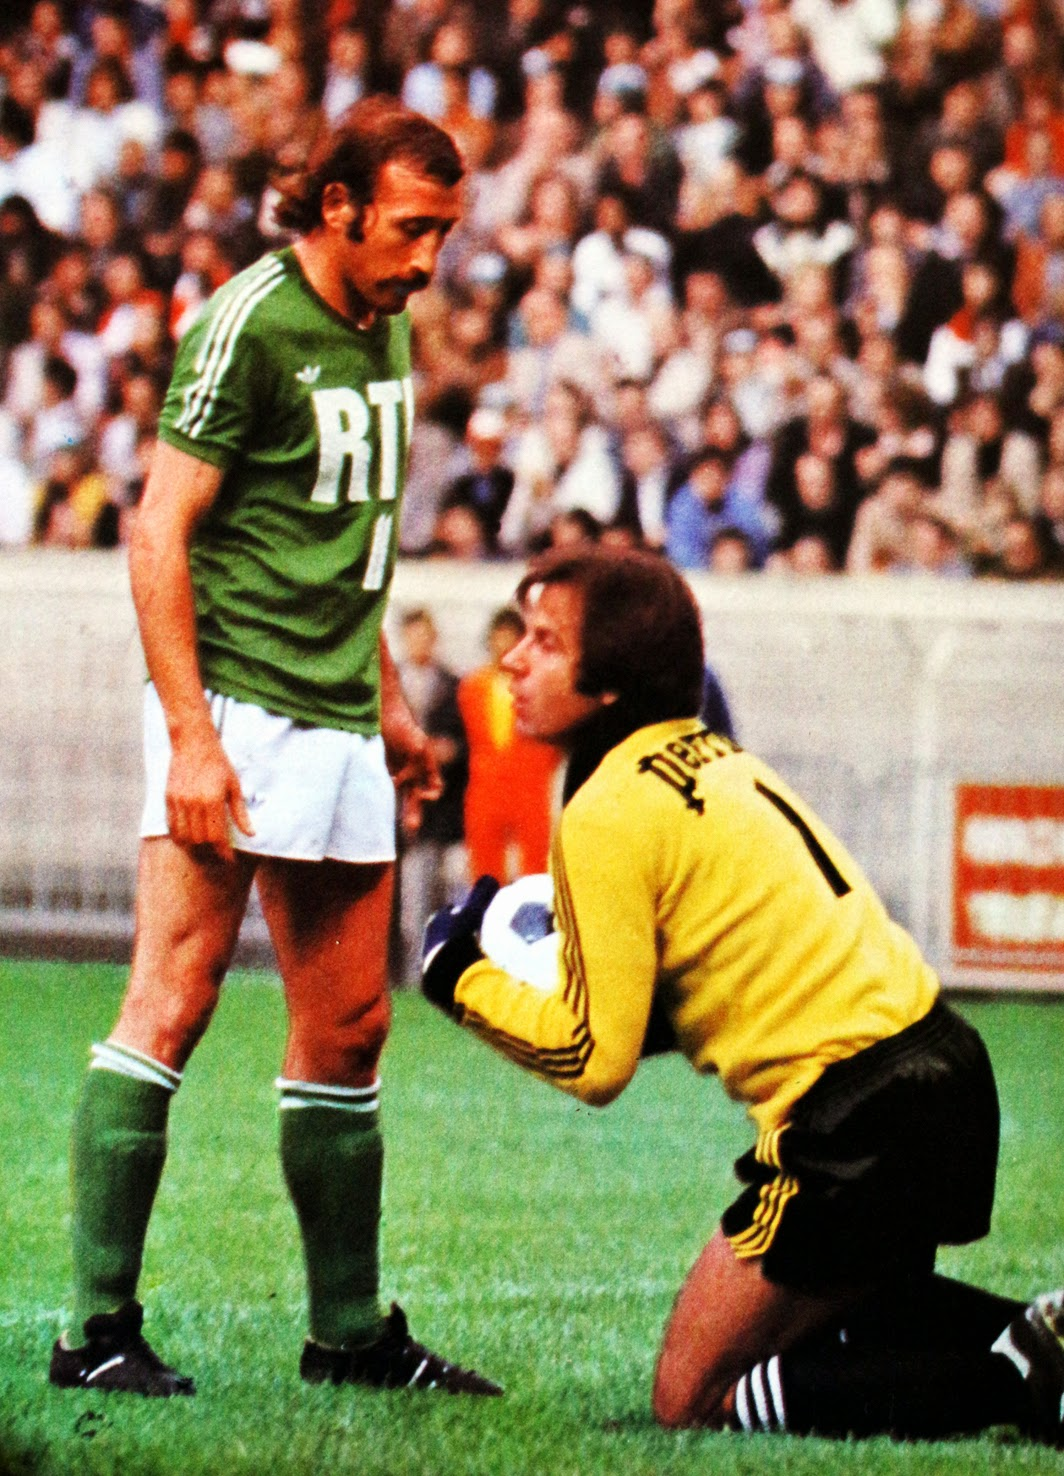 finale coupe de france 1977 st etienne stade de reims the vintage football club. Black Bedroom Furniture Sets. Home Design Ideas